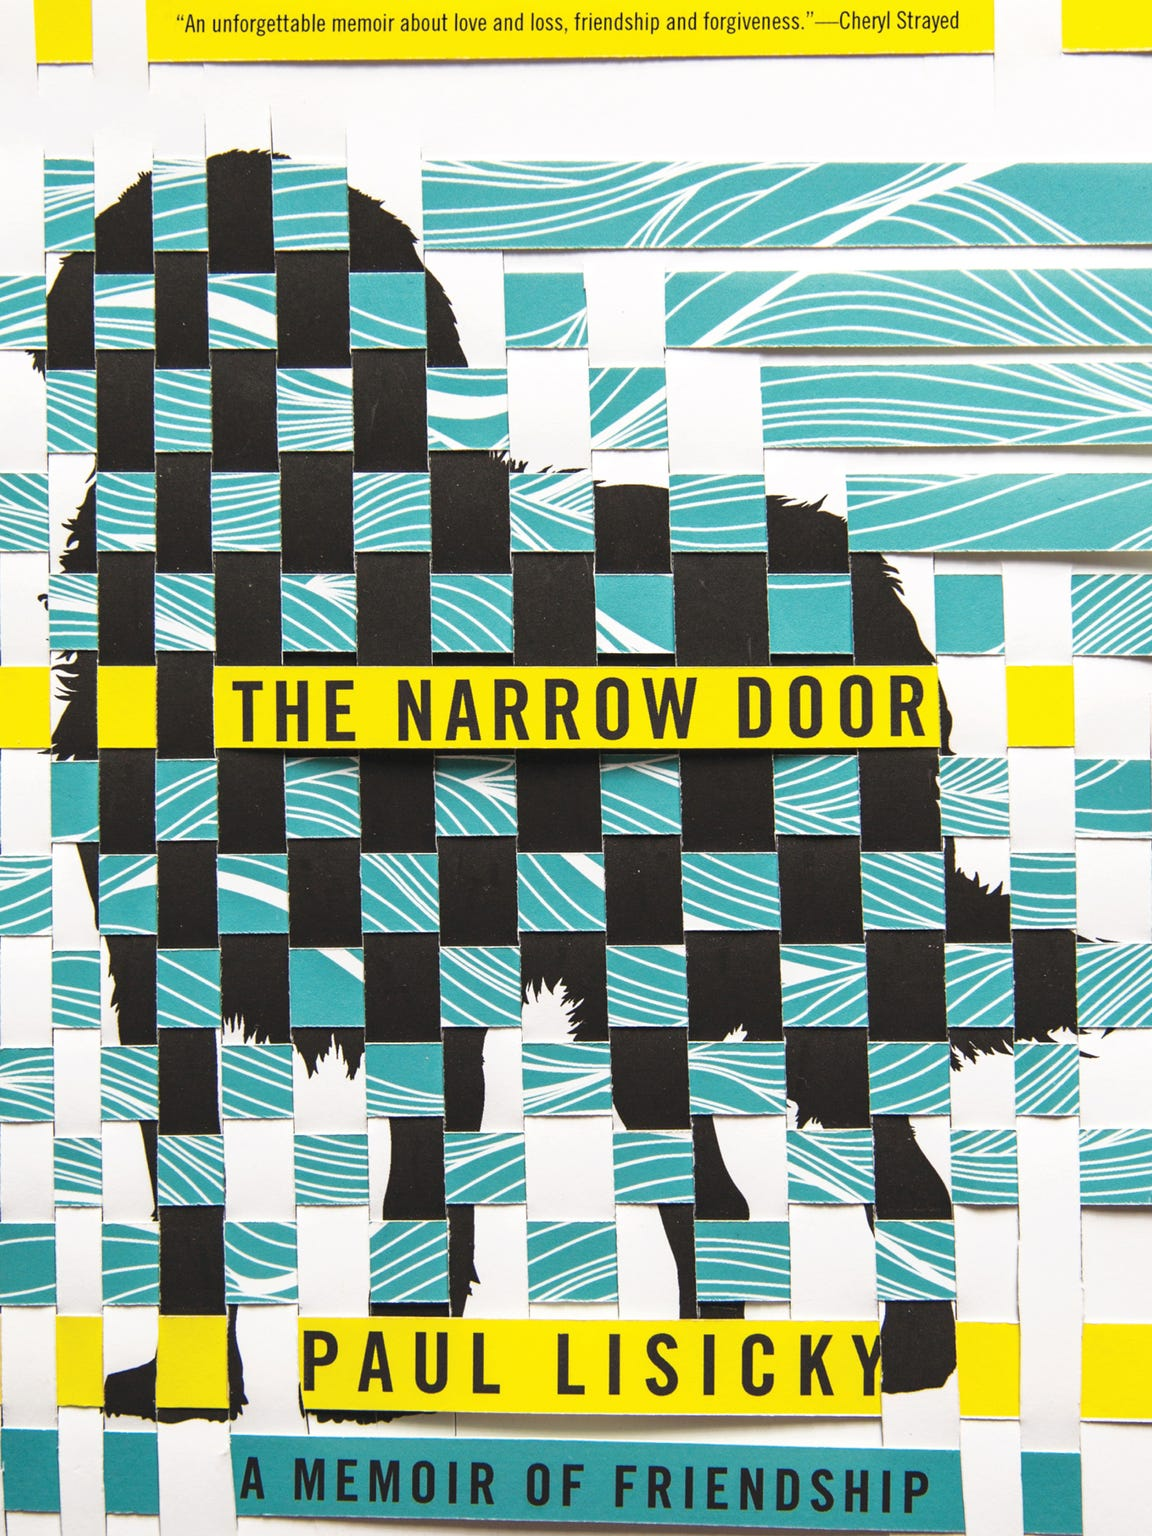 'The Narrow Door' is a Paul Lisicky's memoir of loss, both of his best friend, a gifted novelist, and his marriage to a famous poet.